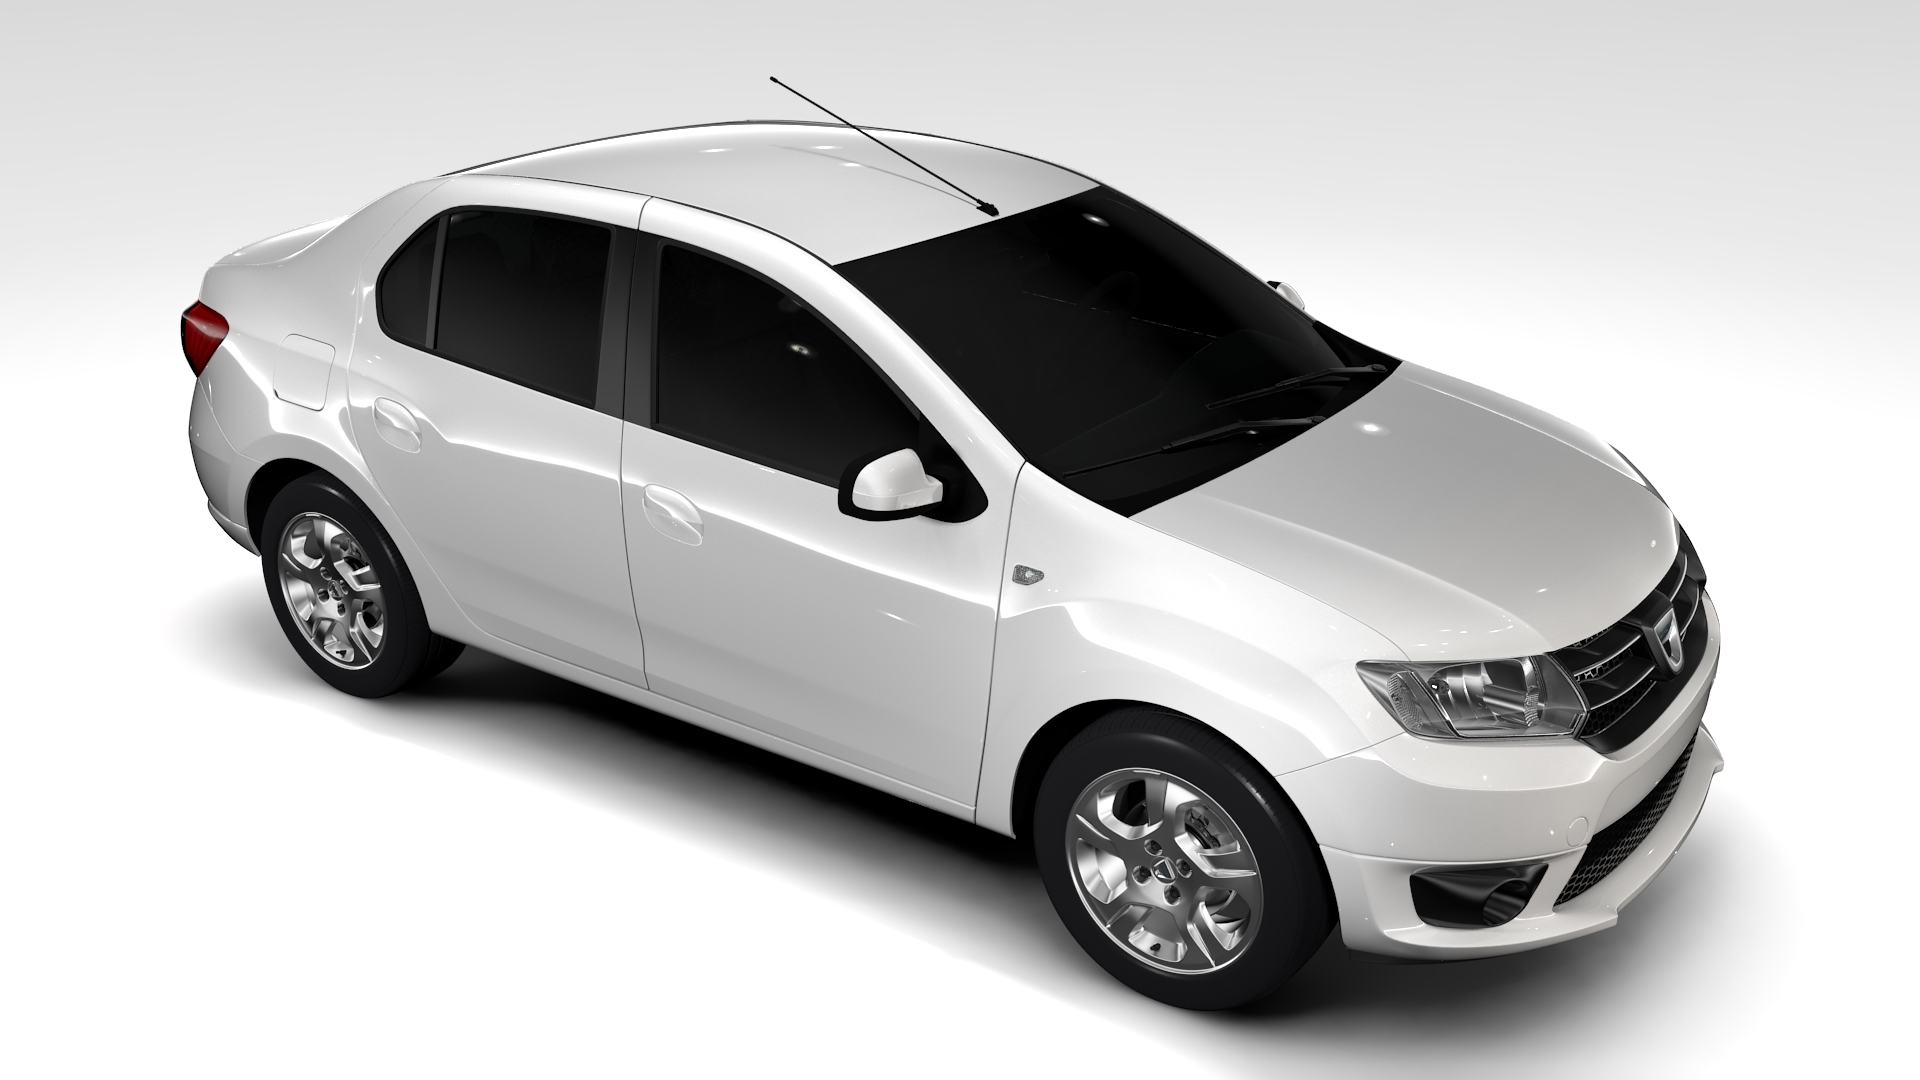 dacia logan 2015 3d model buy dacia logan 2015 3d model flatpyramid. Black Bedroom Furniture Sets. Home Design Ideas